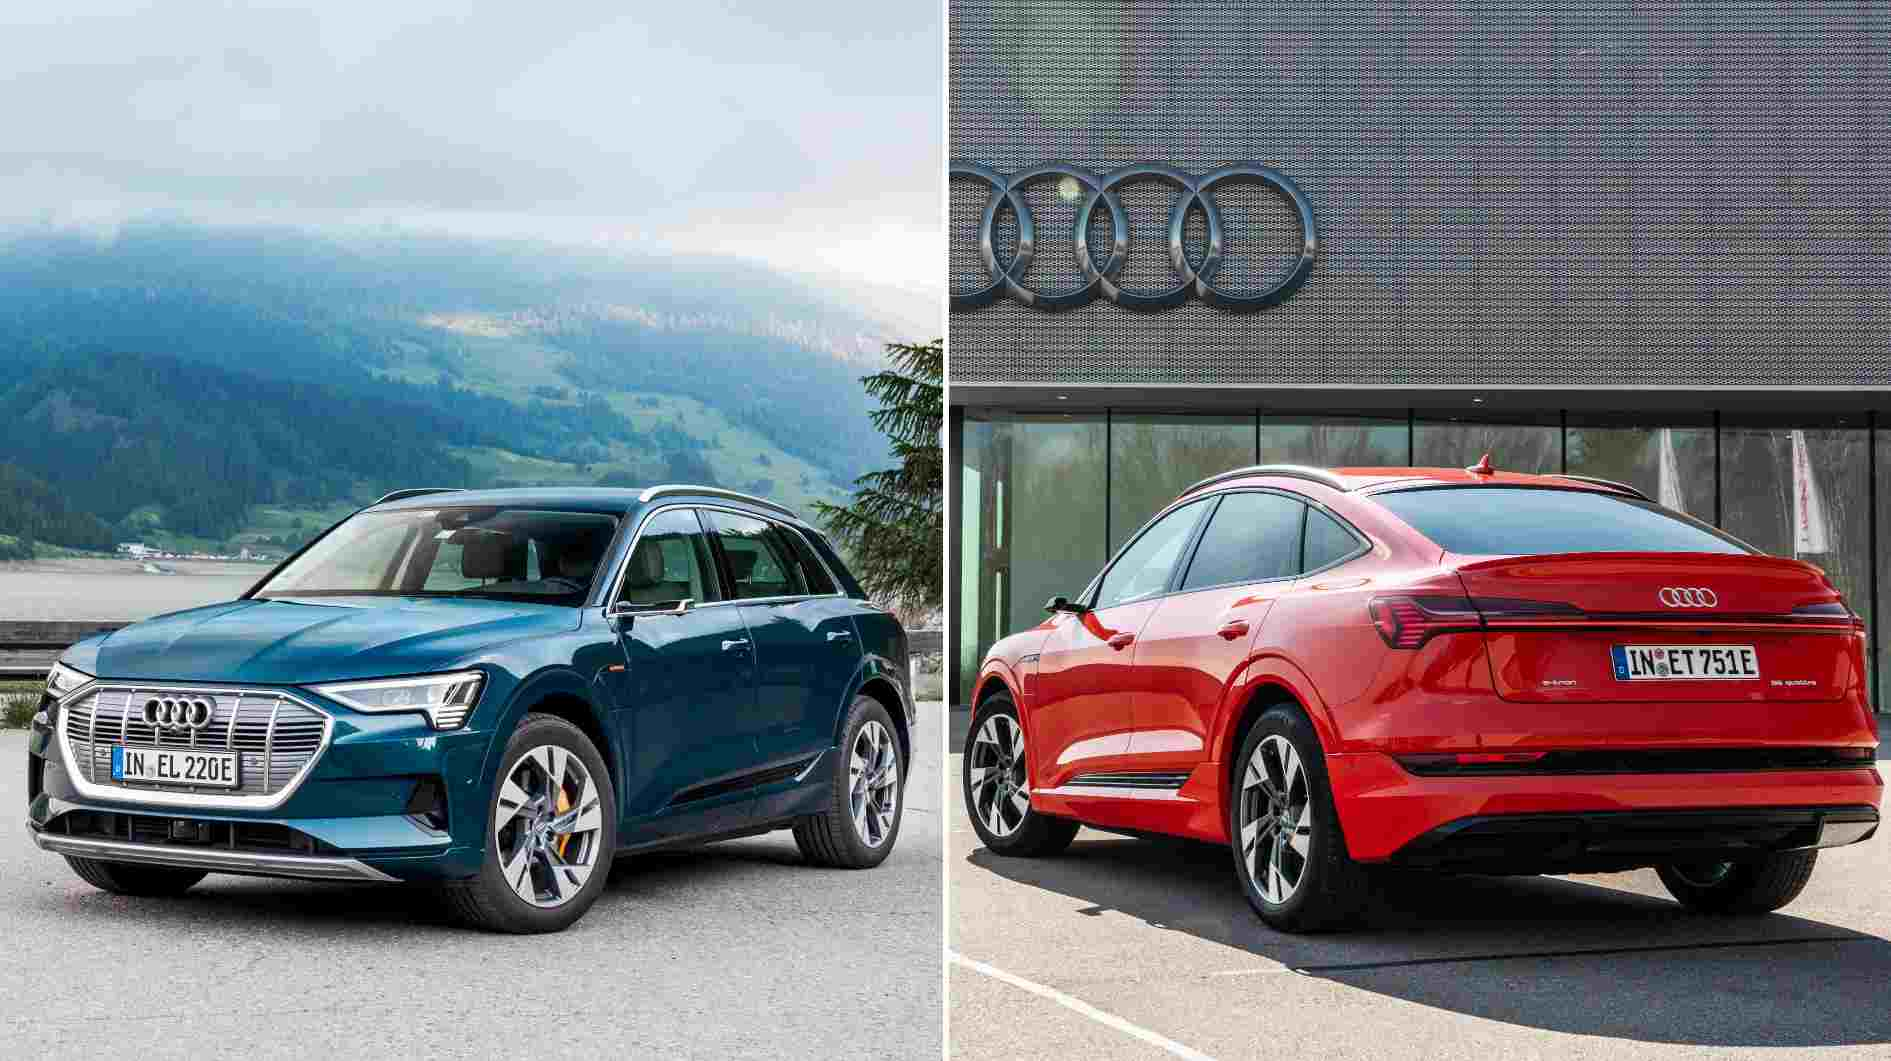 Audi e-tron, e-tron Sportback to be launched in India by mid-2021, more Audi EVs in the pipeline